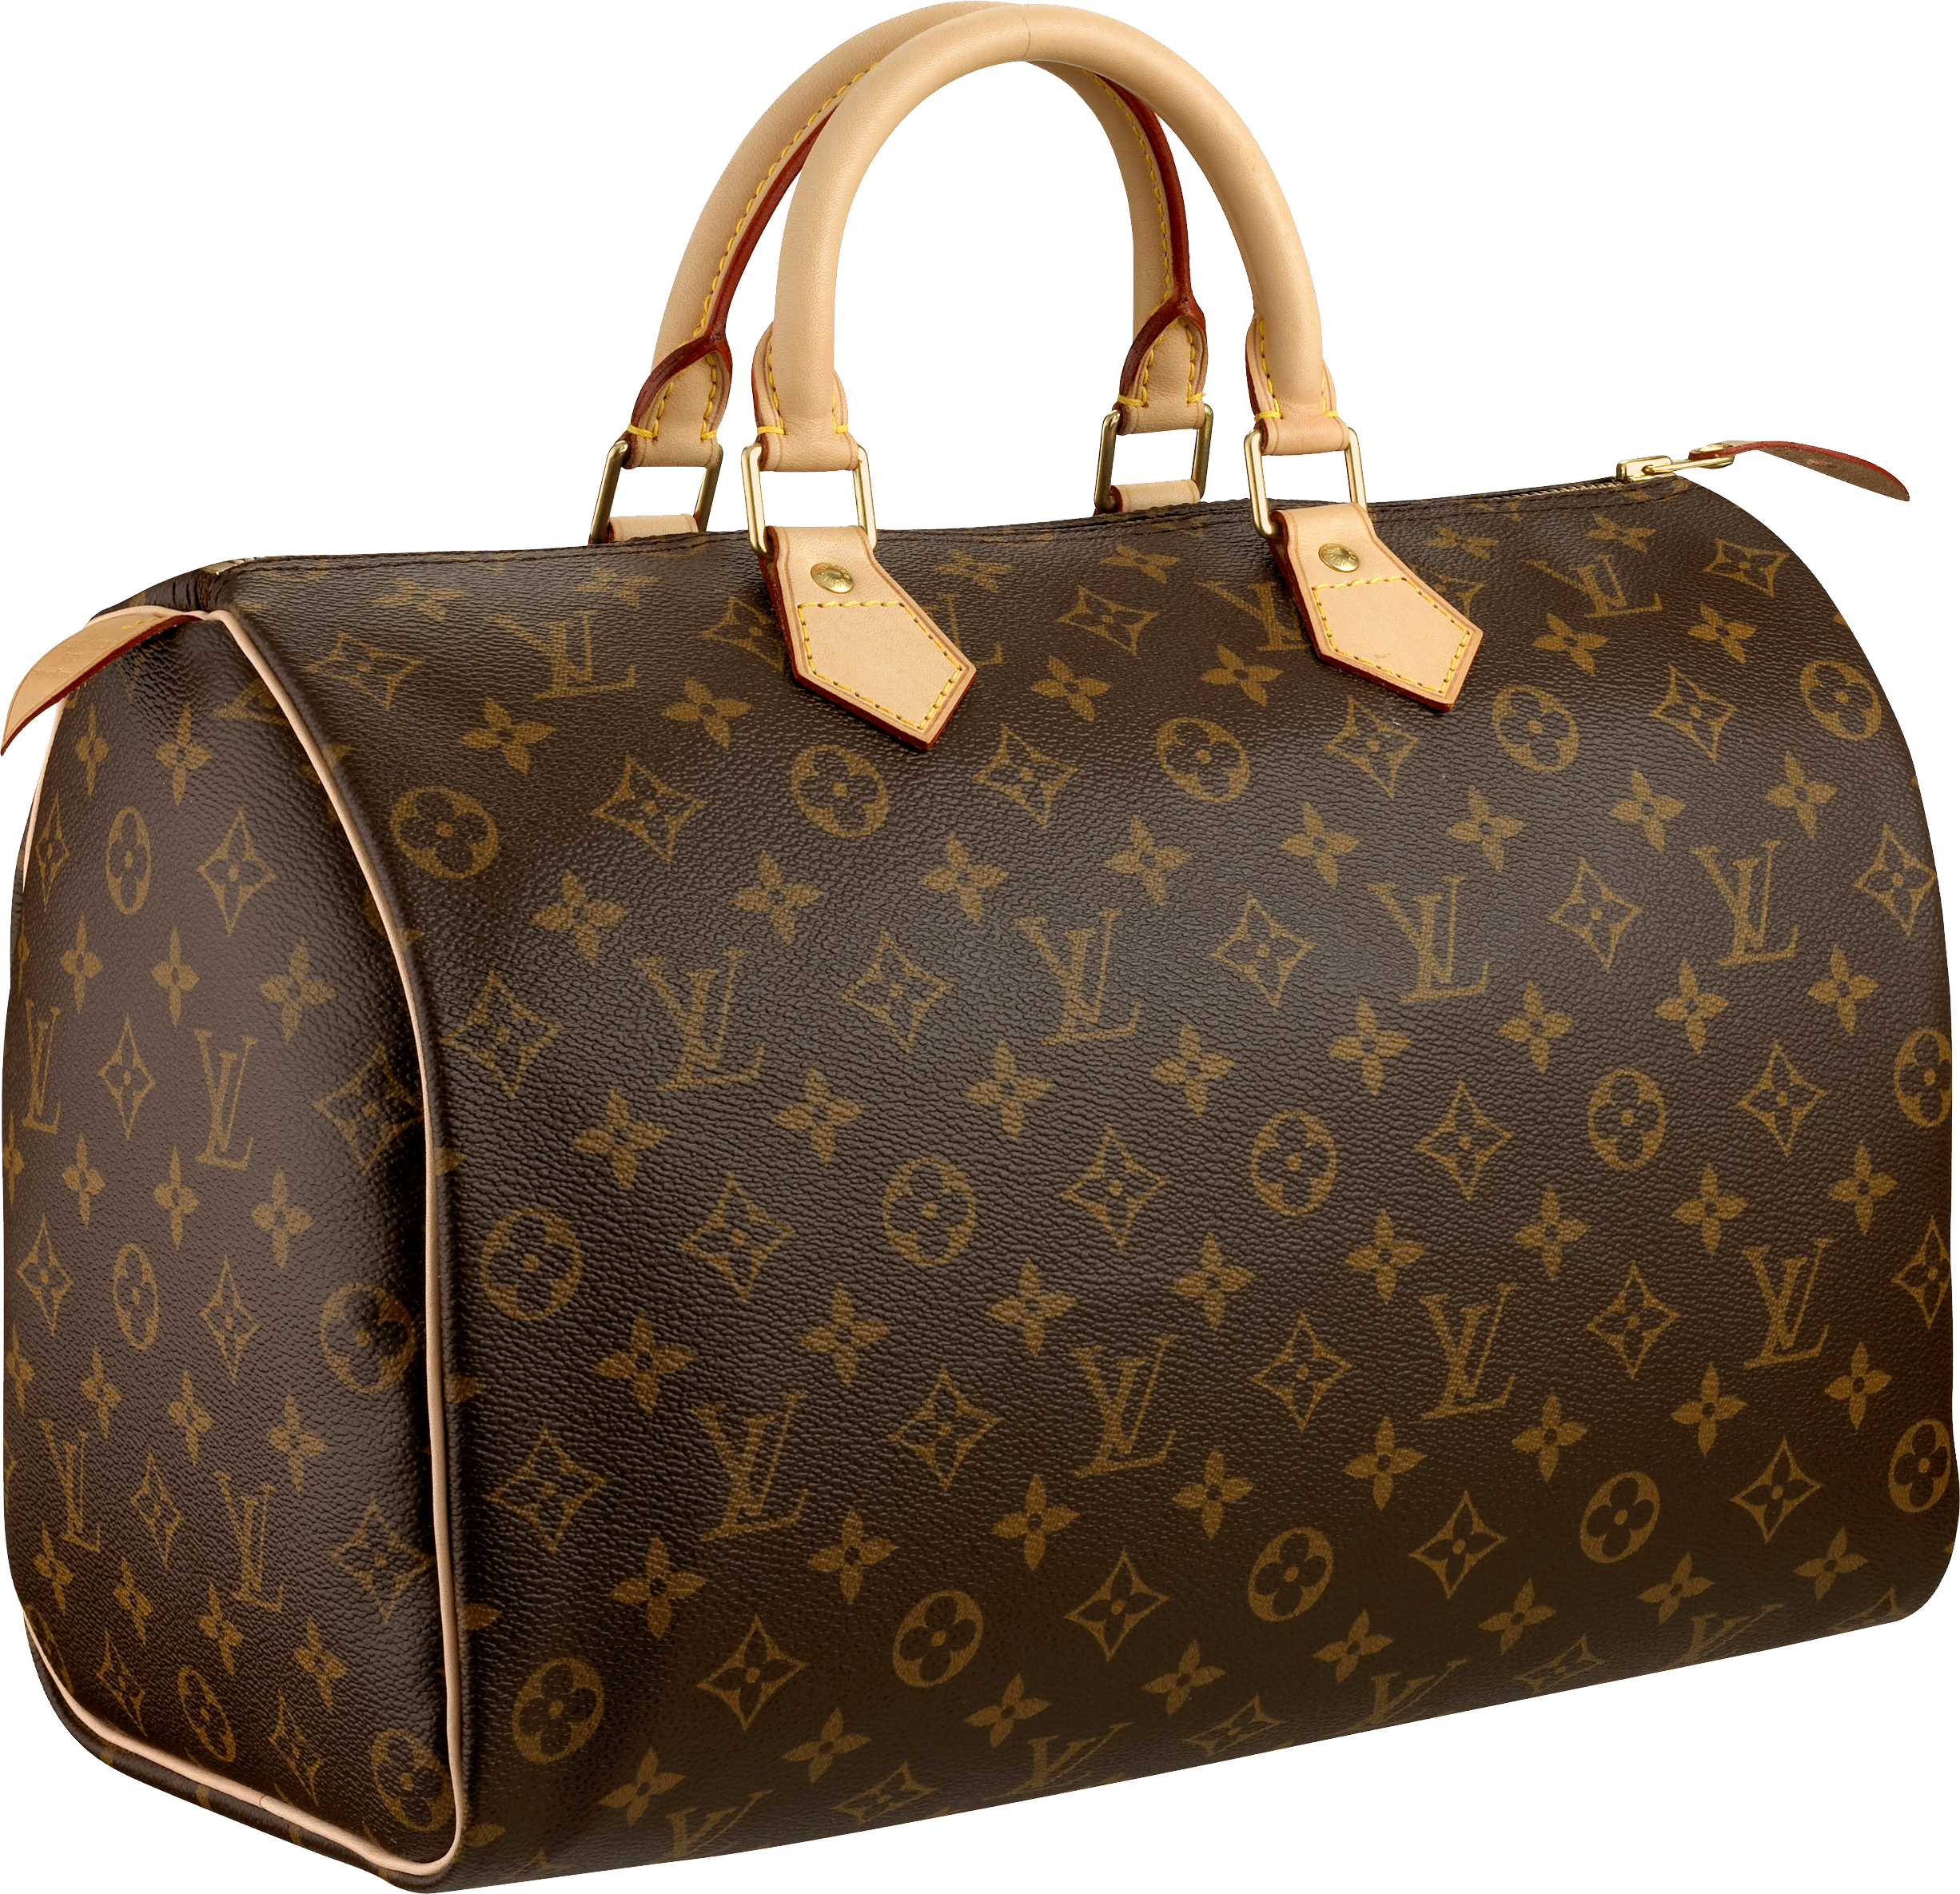 Louis Vuitton Bag Png & Free Louis Vuitton Bag.png.